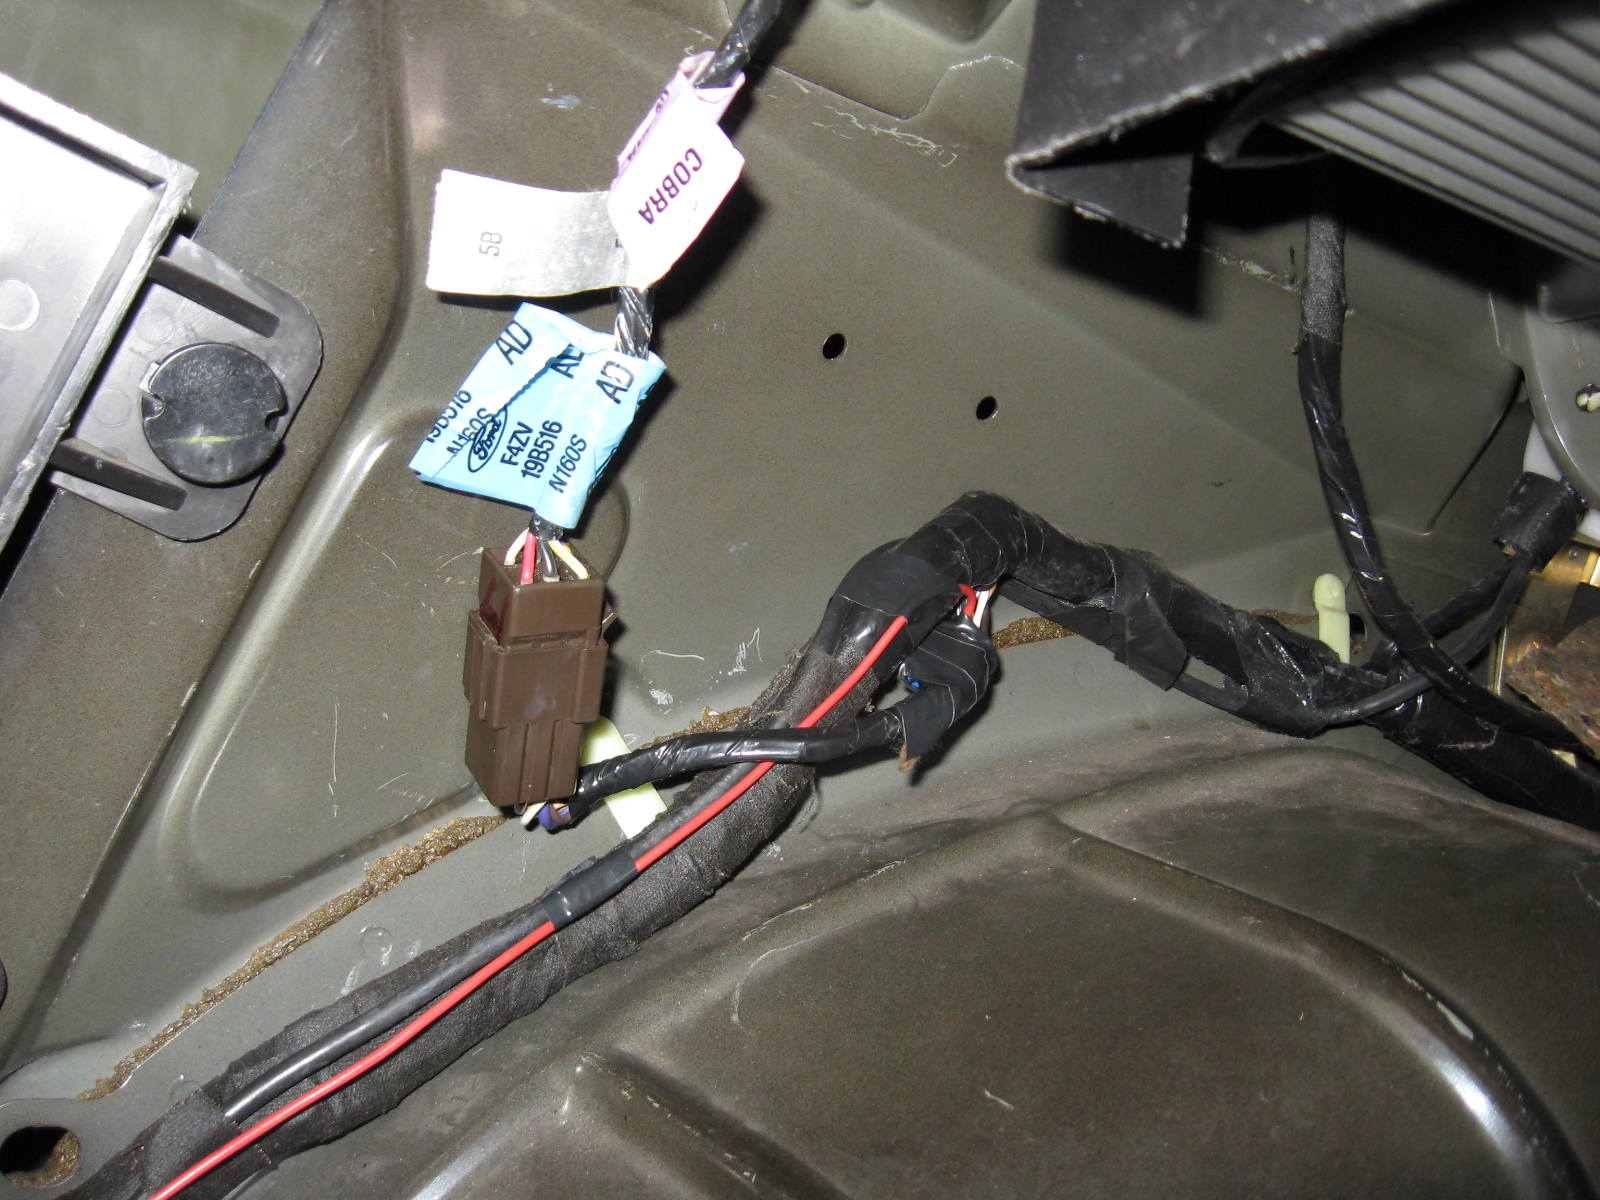 Mustang 1994 1995 Export Taillight Installation Cobra Tail Light Wiring Diagram Go Ahead And Wrap The Exposed Wires Up Along With Quick Splice Connector Run Red Wire Down Trunk Harness Using Electrical Tape Every Few